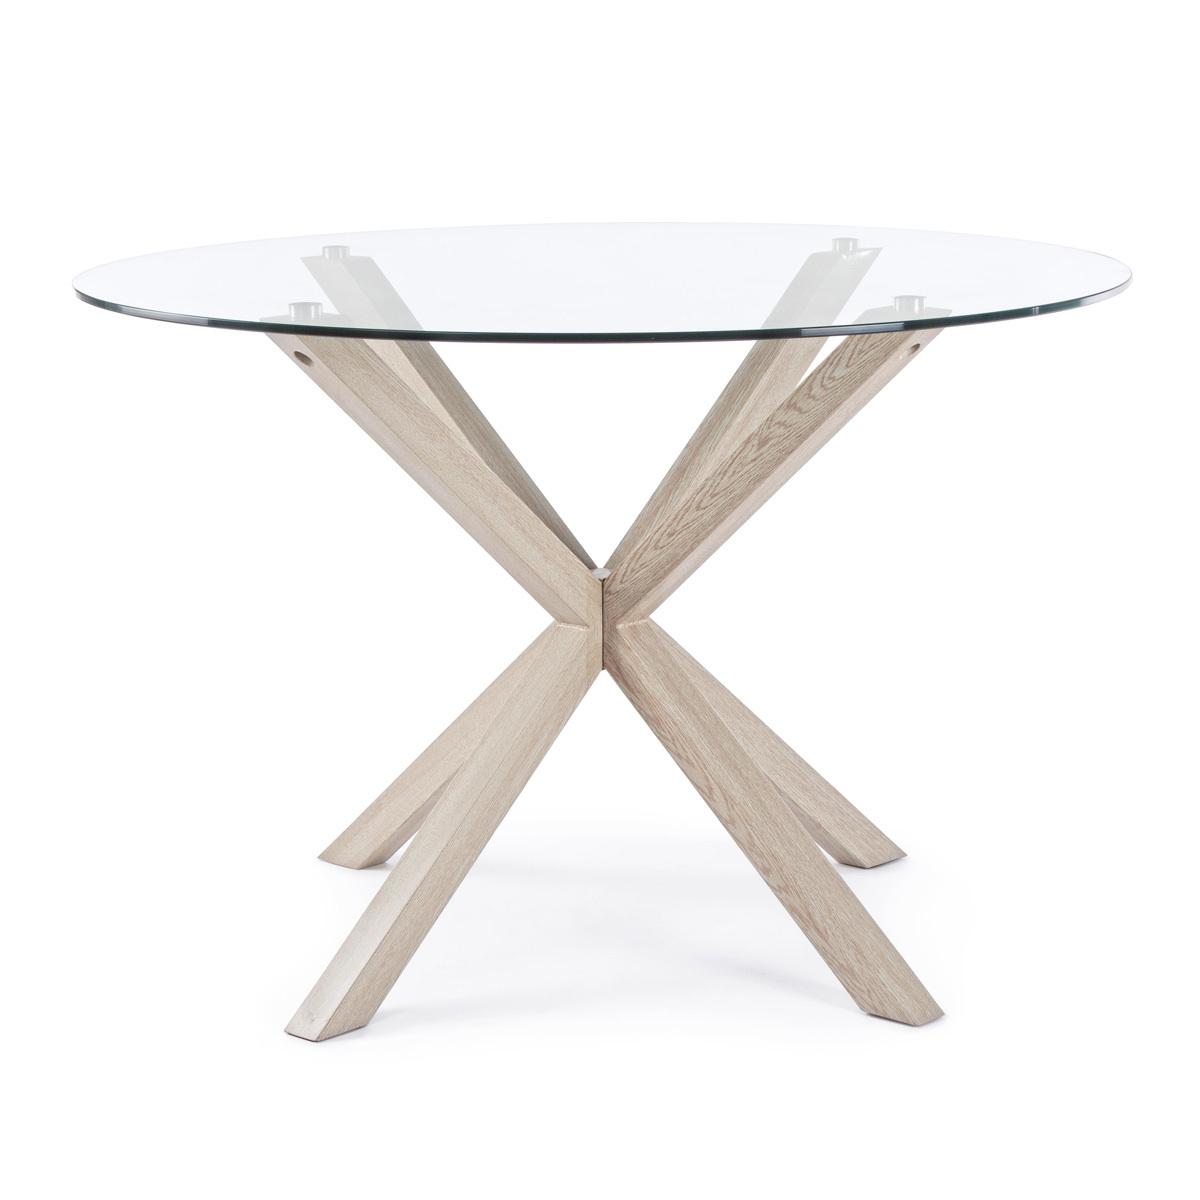 Photos 2: Bizzotto Fixed round table d. 114 0732185